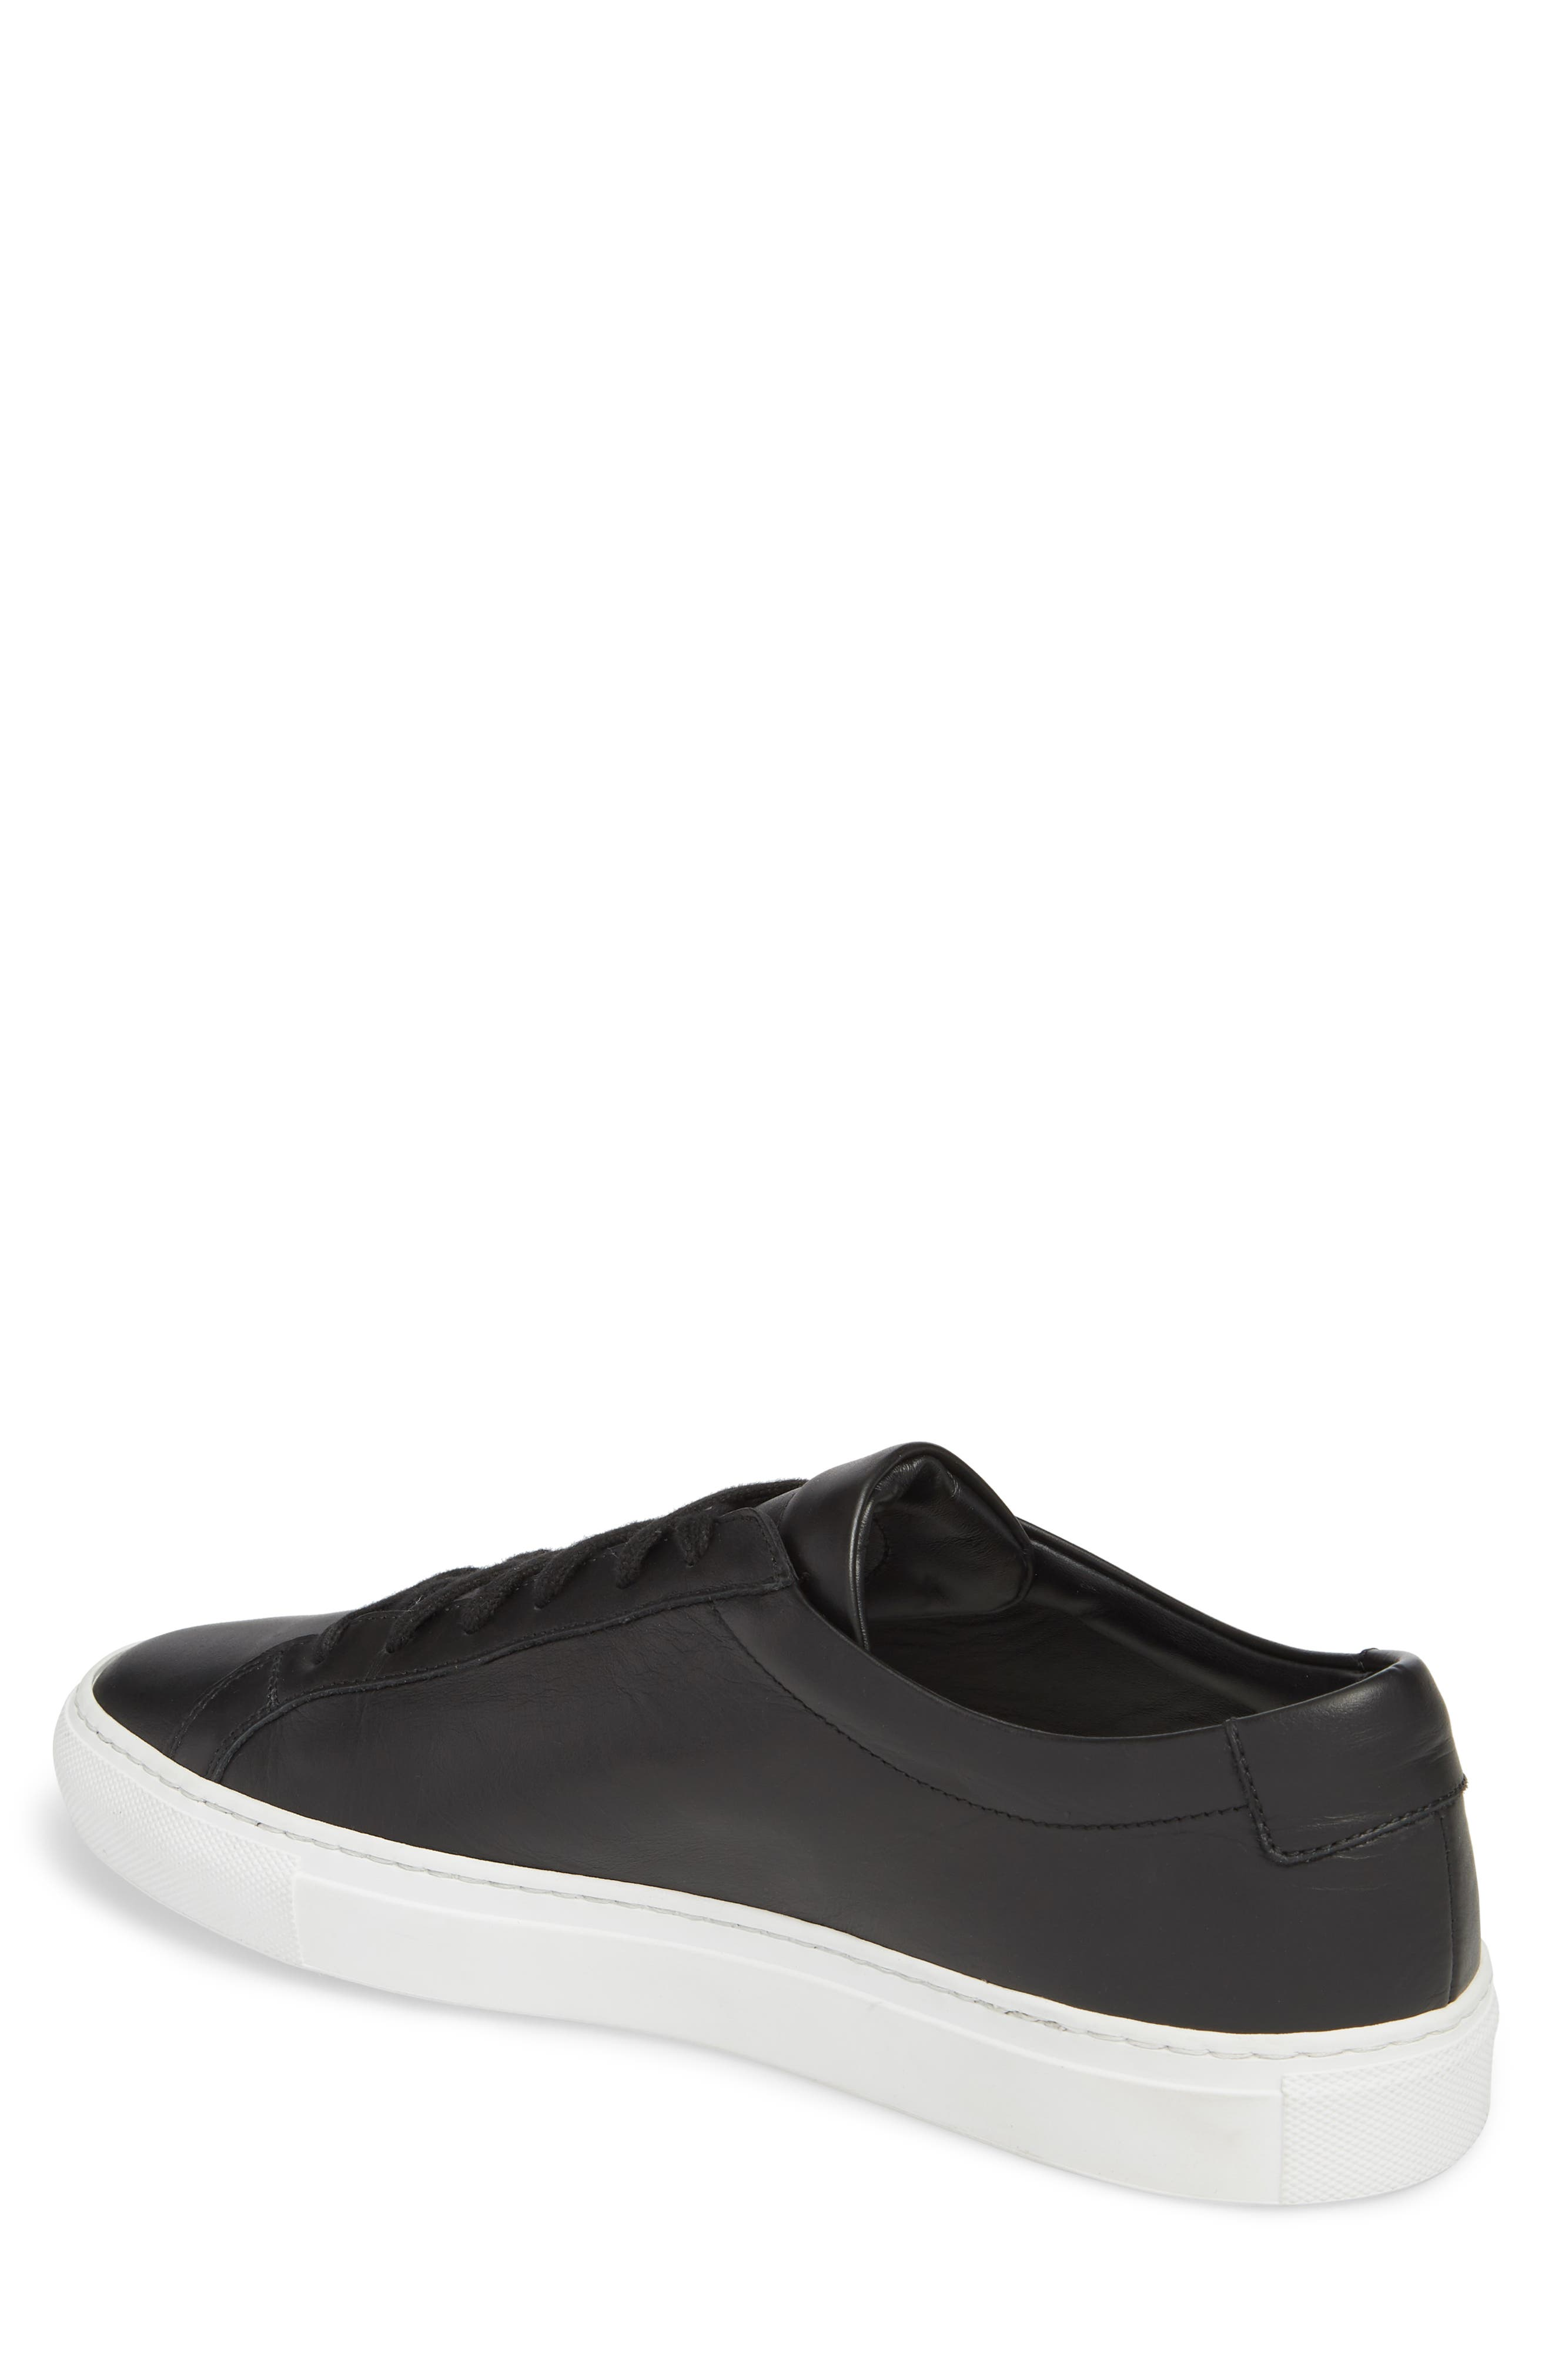 COMMON PROJECTS, Achilles Low Sneaker, Alternate thumbnail 2, color, BLACK LEATHER